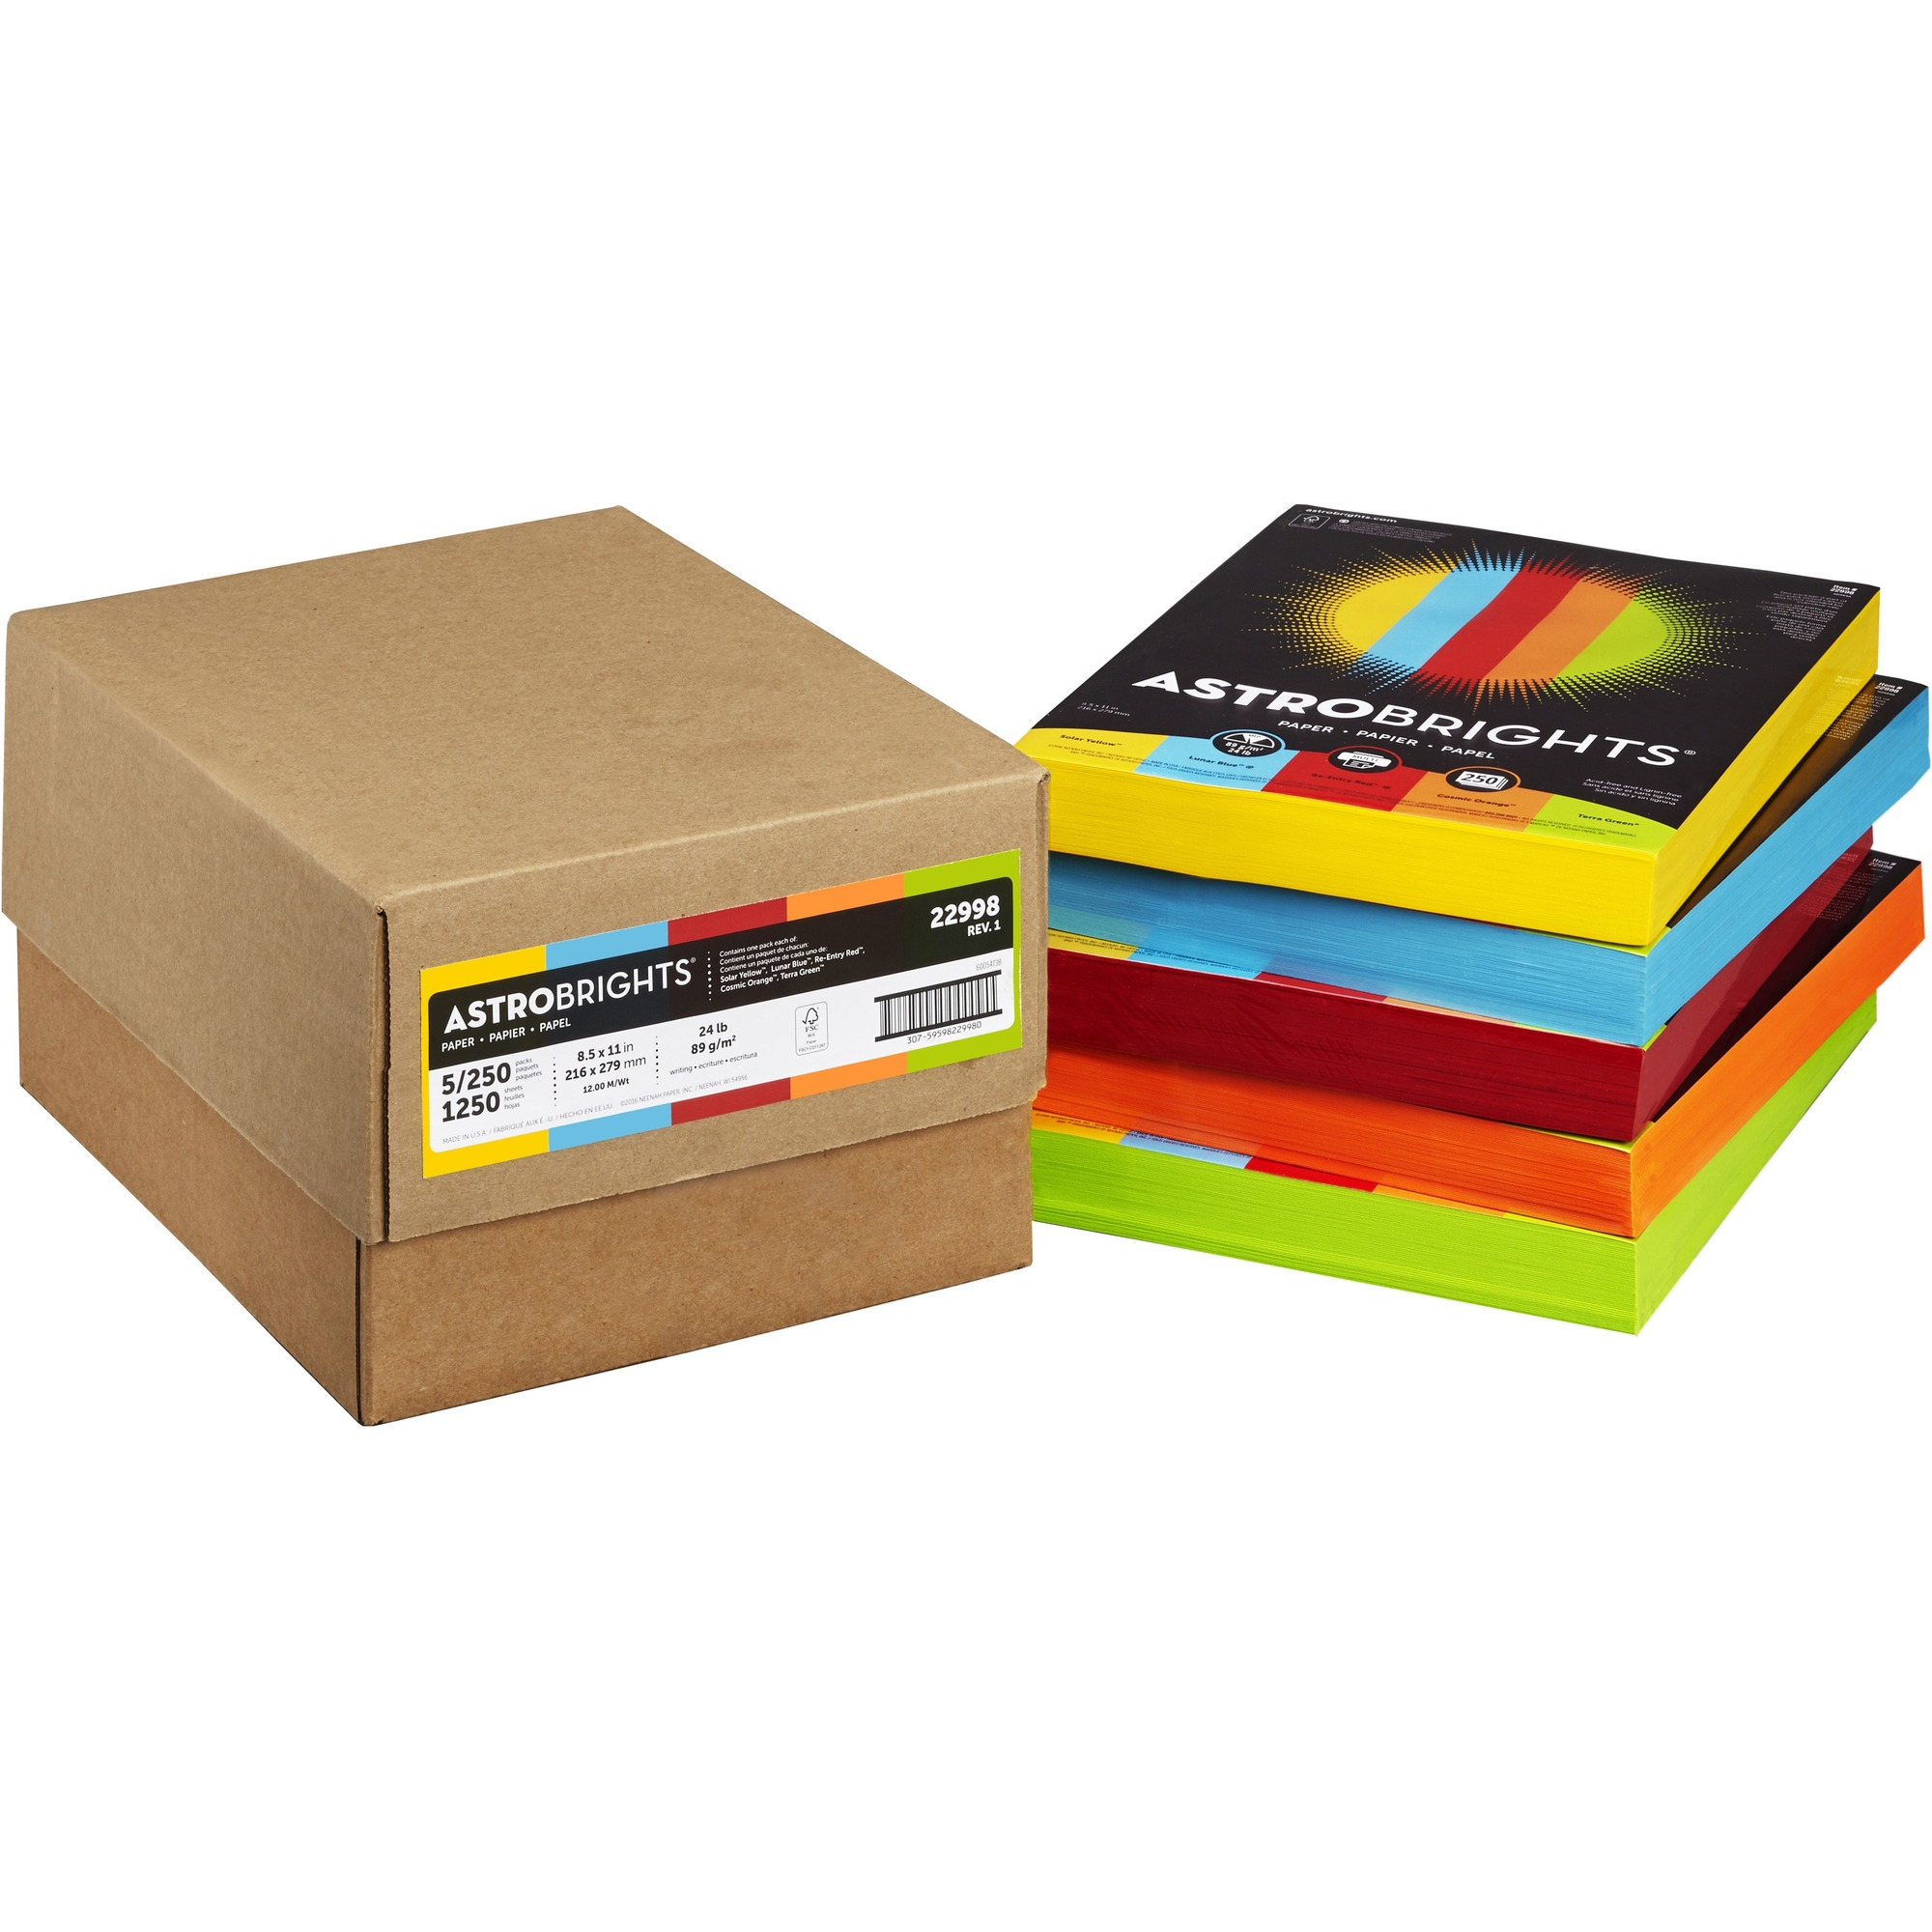 astrobrights paper Astrobrights® color paper in happy assortment lets you easily create impressive school projects, paper crafting projects, flyers, brochures, signs, coupons, and posters craft dazzling designs and projects with astrobrights color paper, in happy assortment our paper is 20% thicker than standard paper, so you can achieve bleed-free results for single and double-sided documents.